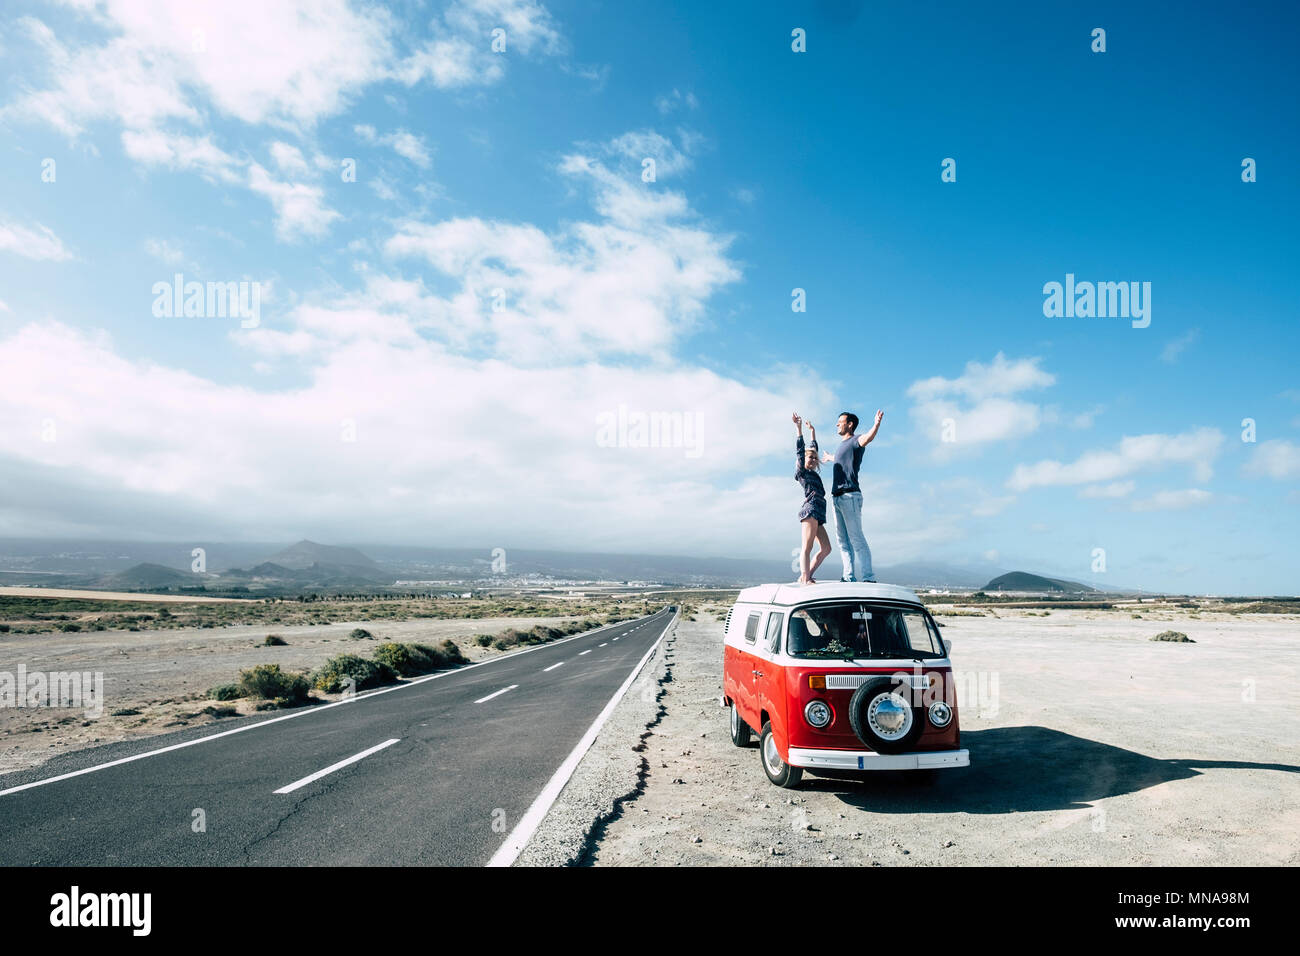 hippy style for an alternative vacation time outdoor leisure activity for young couple caucasian beautiful staying on the rooftop of a vintage van nea Stock Photo